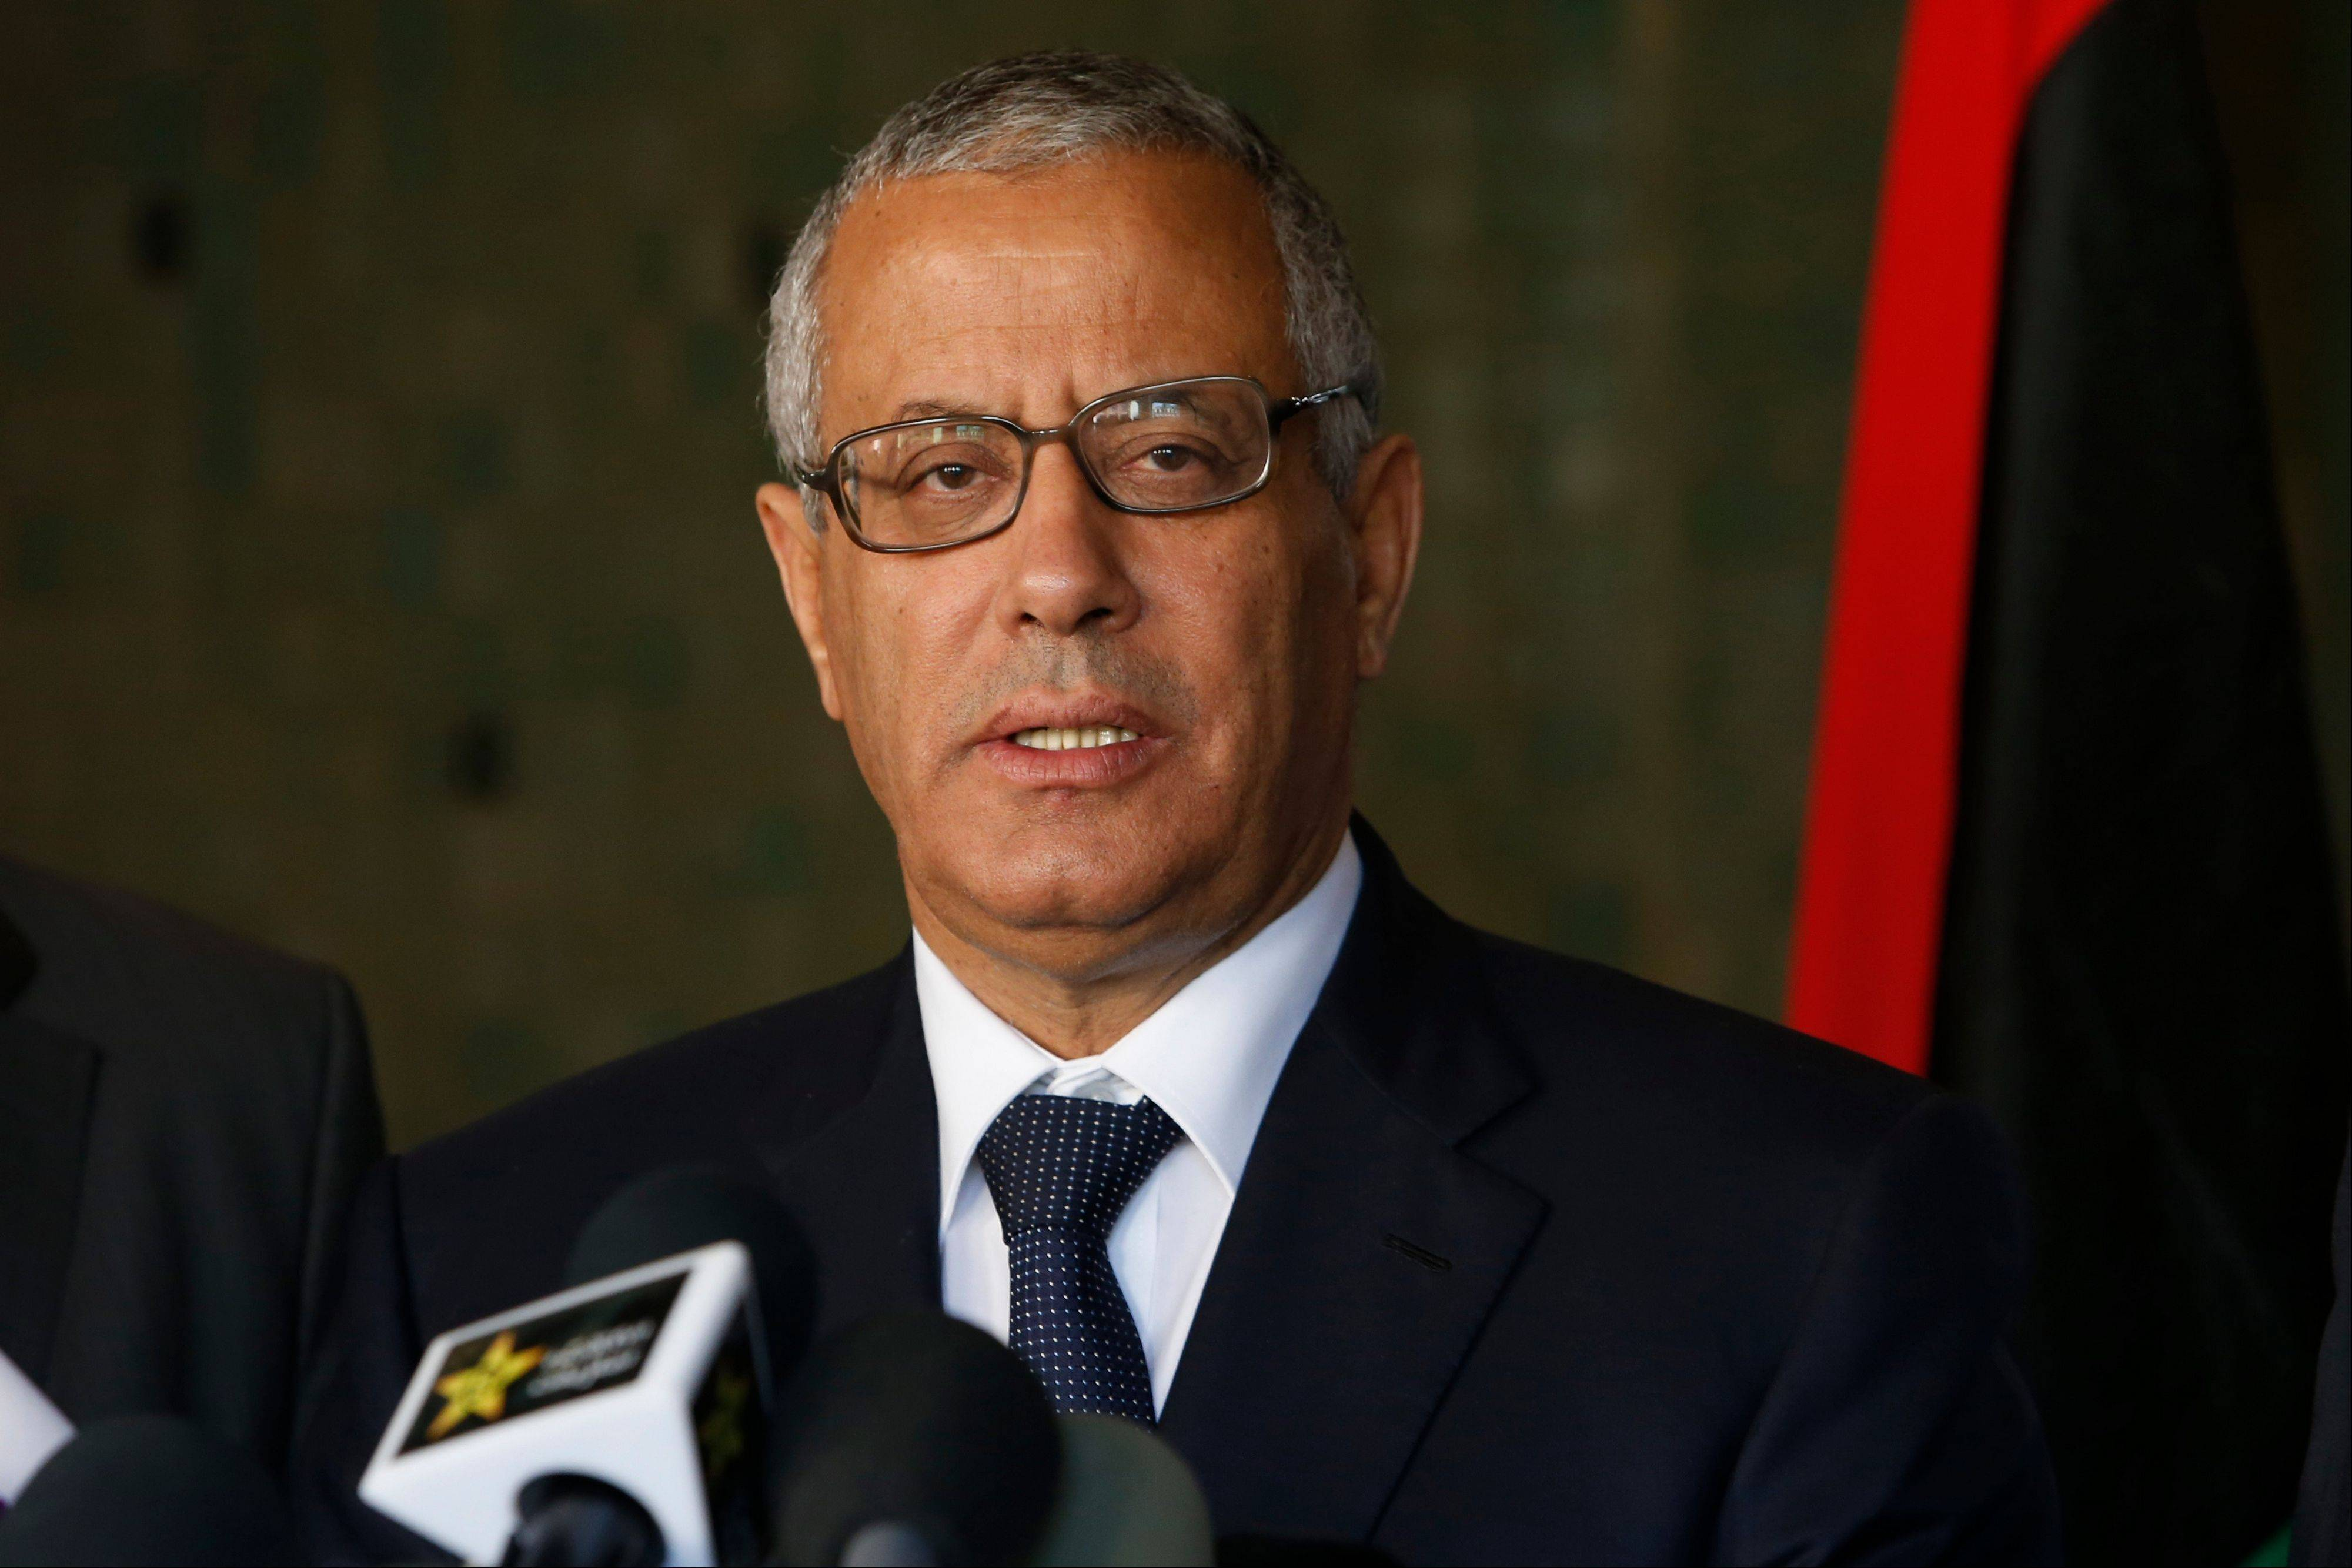 Libyan�s Prime Minister Ali Zidan was snatched by gunmen before dawn Thursday from a Tripoli hotel where he resides, the government said. The abduction appeared to be in retaliation for the U.S. special forces� raid over the weekend that seized a Libyan al-Qaida suspect from the streets of the capital.